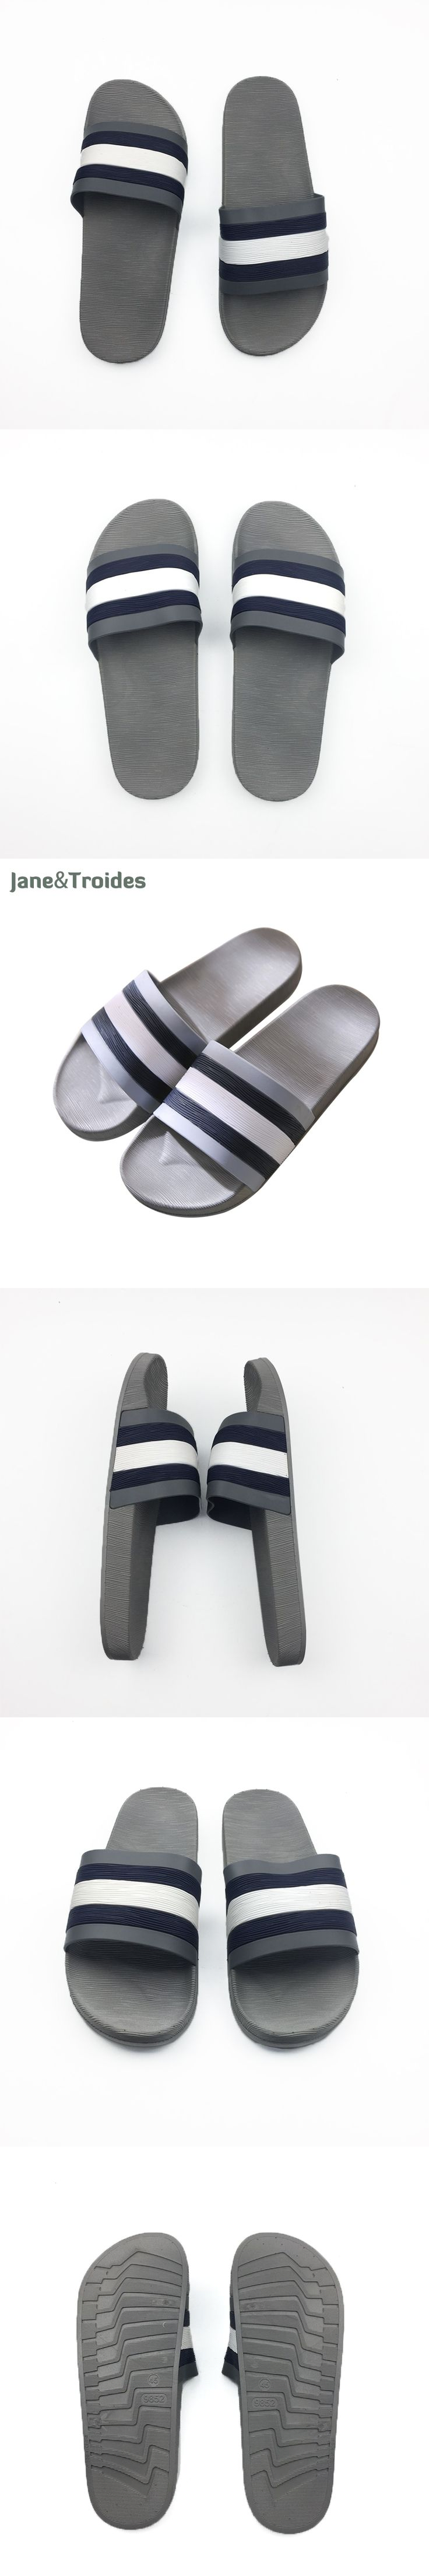 Jane & Troides Summer Non-slip Men Slippers Indoor Outdoor Soft Comfortable Flip Flops Striped Casual Sandals Fashion Man Shoes